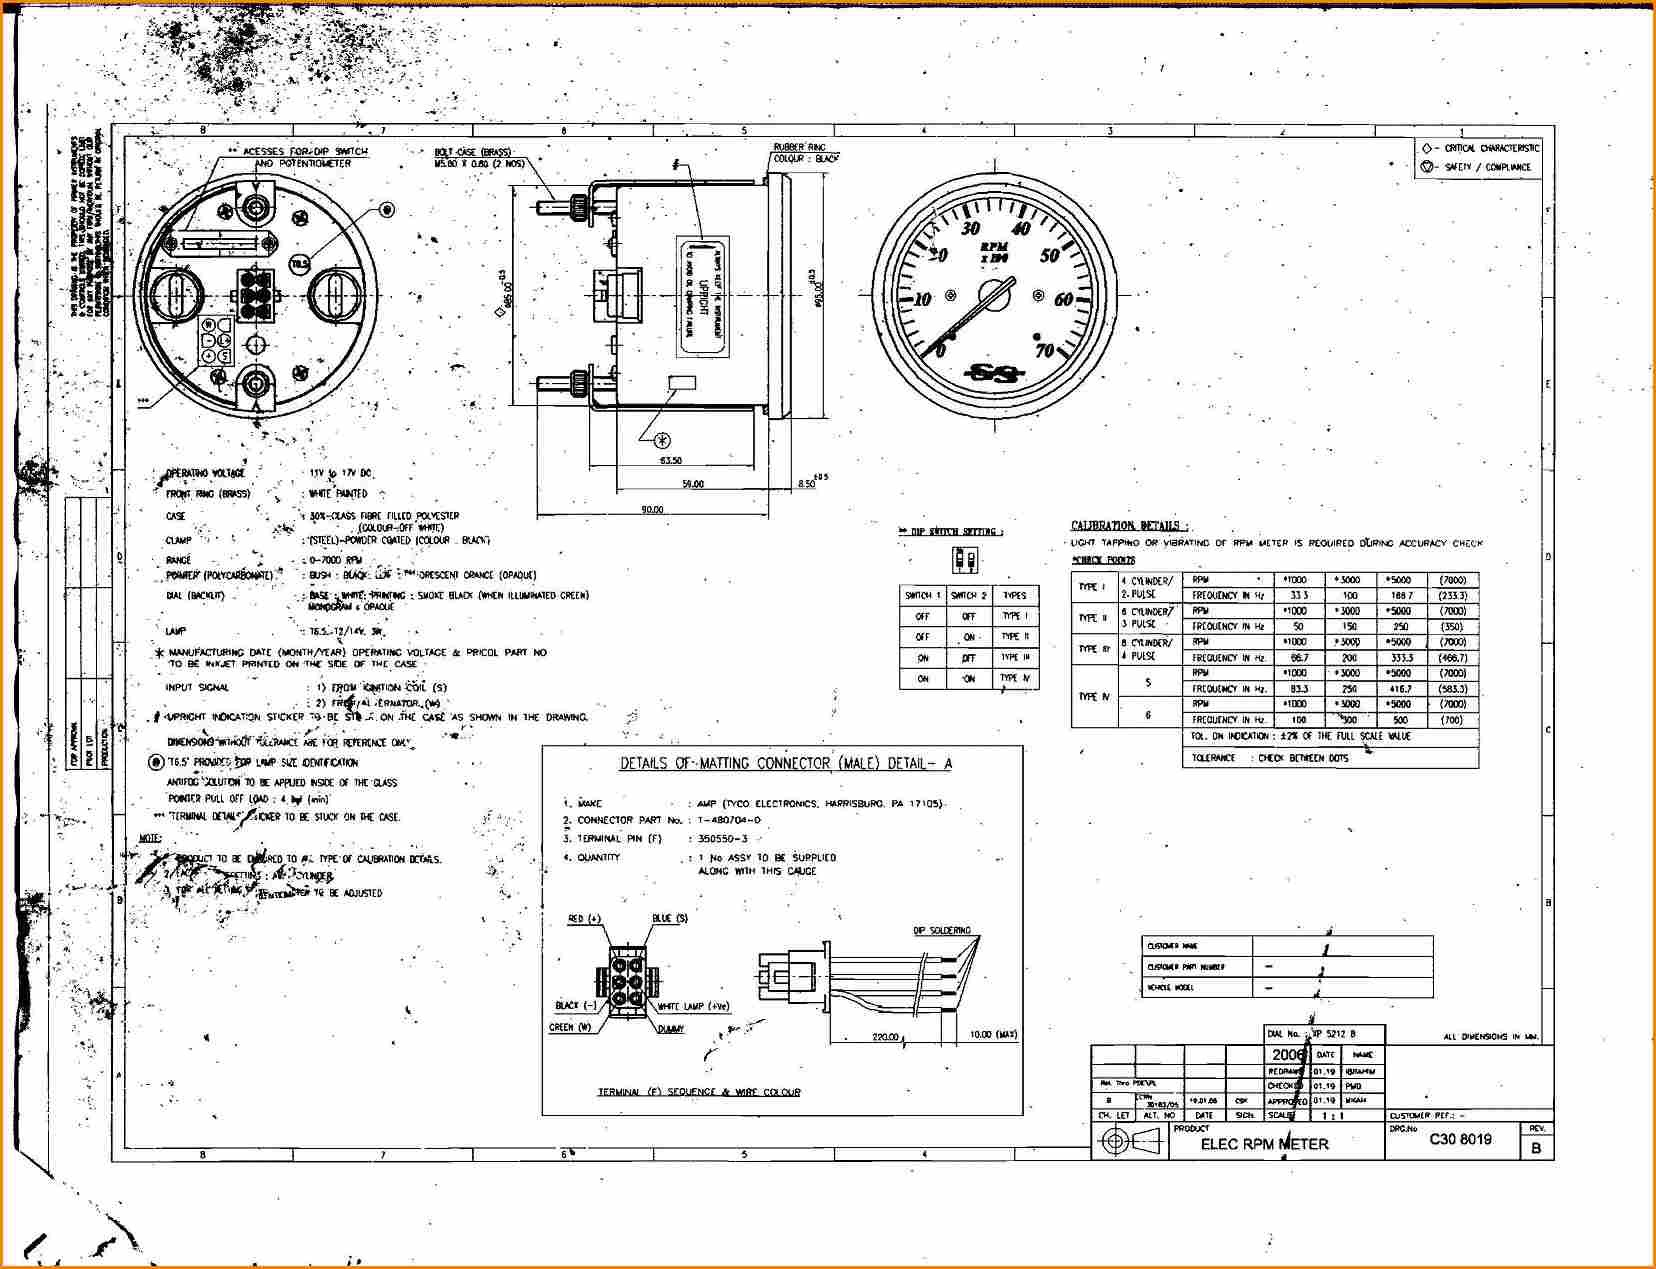 Tach Wiring Diagram Library 2000 Johnson Suzuki Outboard Tachometer Download Pdf Beautiful Yamaha